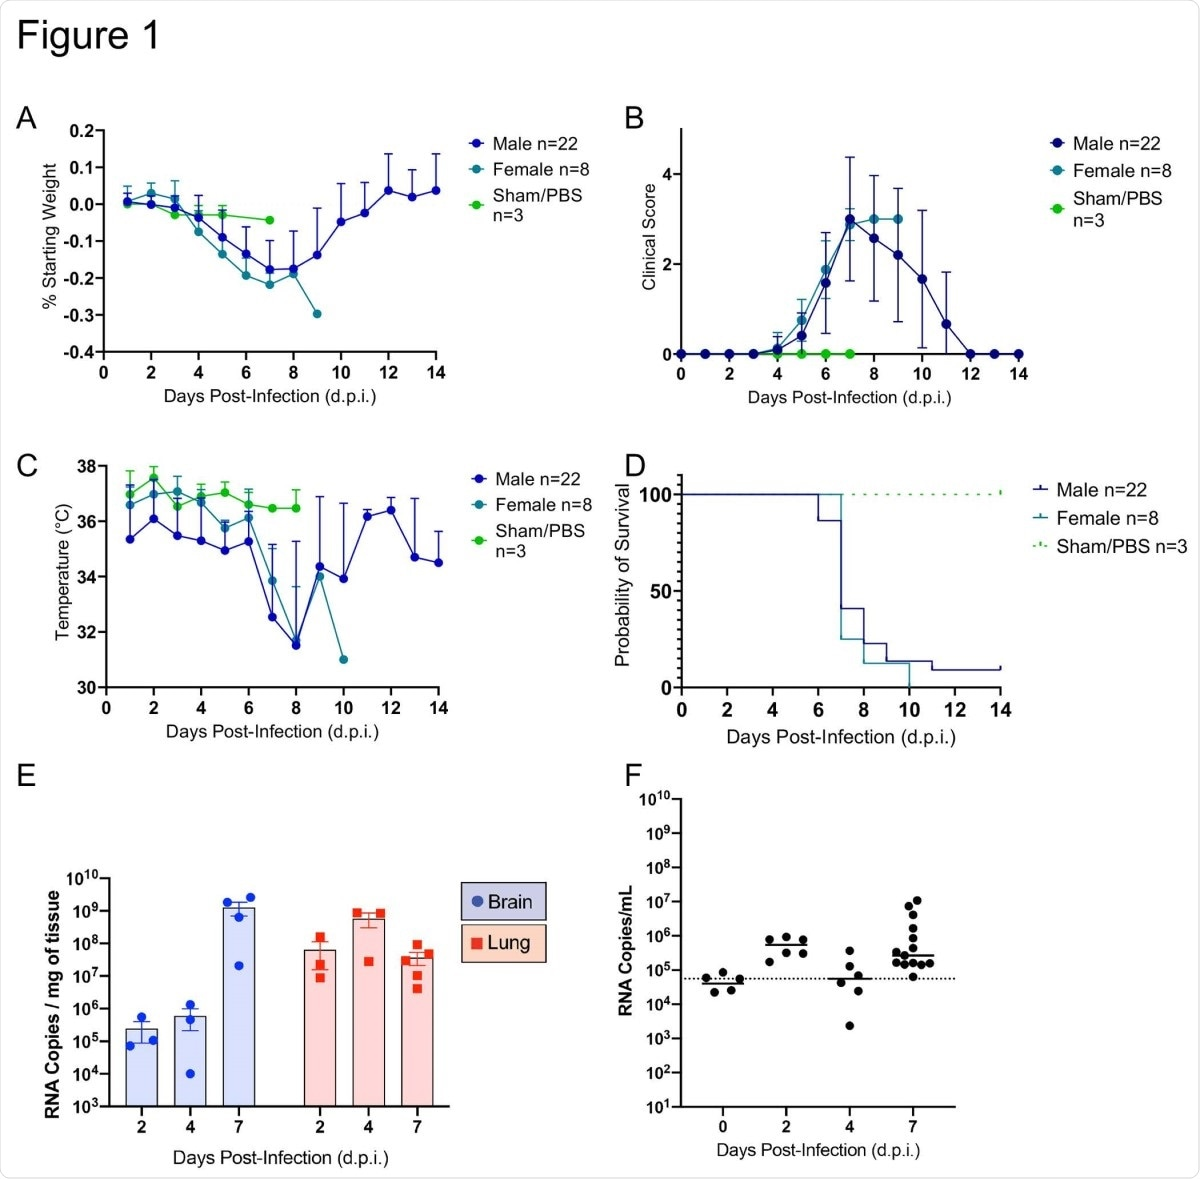 SARS-CoV-2 caused lethal disease in K18-hACE2 mice (n=33) inoculated intranasally with 1 x 106 plaque forming units (PFU). Body weight (A), clinical signs (B), temperature (C), and mortality (D) were monitored daily. Viral loads (genome copy numbers/mg or ml) were monitored in the brain, lungs (E) and serum (F) throughout the study. Mean genome copy numbers are depicted. The limit of detection (LOD) is shown with a dashed line.